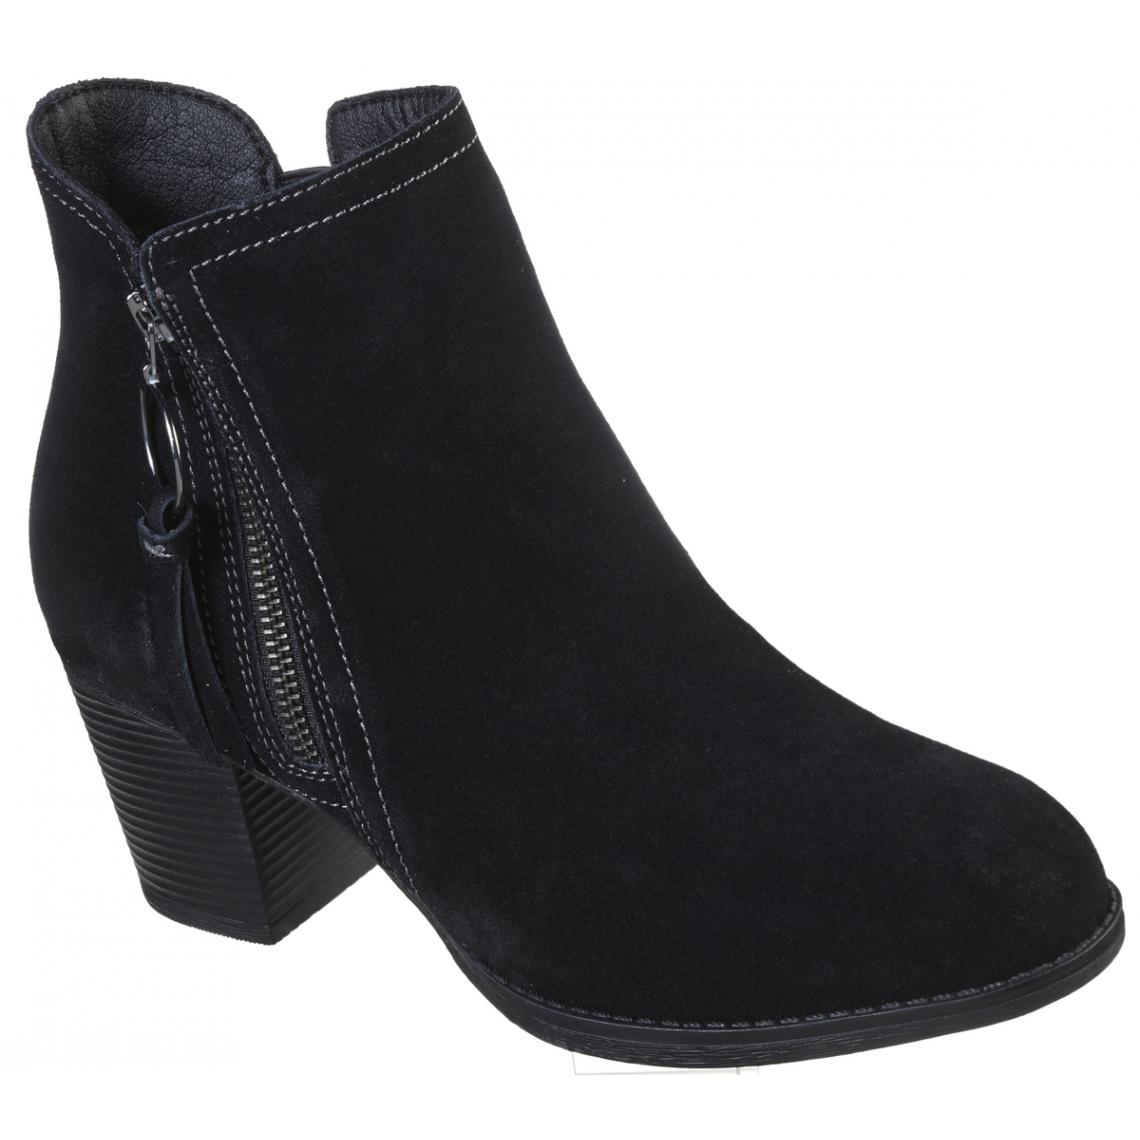 Promo : Bottines Noir taxi single ladies - Skechers - Modalova